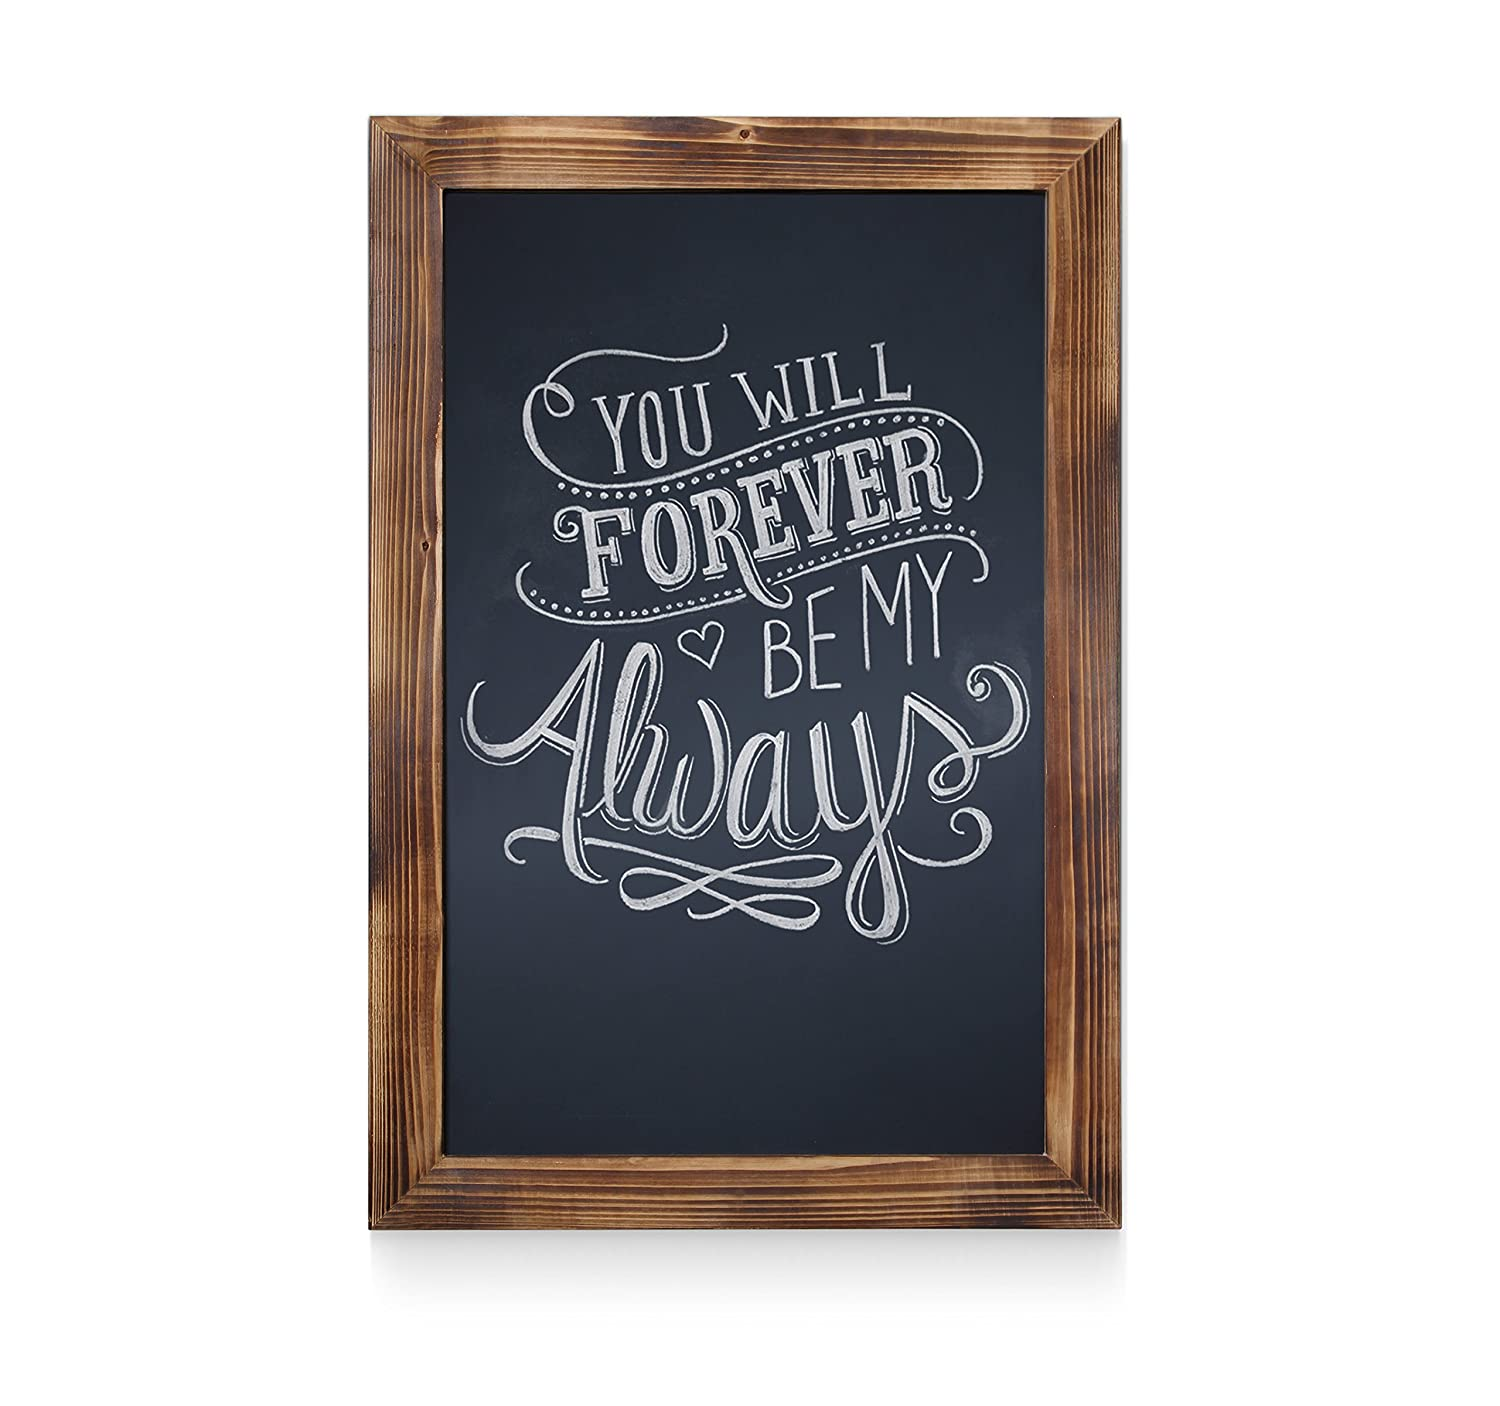 HBCY Creations Rustic Torched Wood Magnetic Wall Chalkboard, Small Size 11